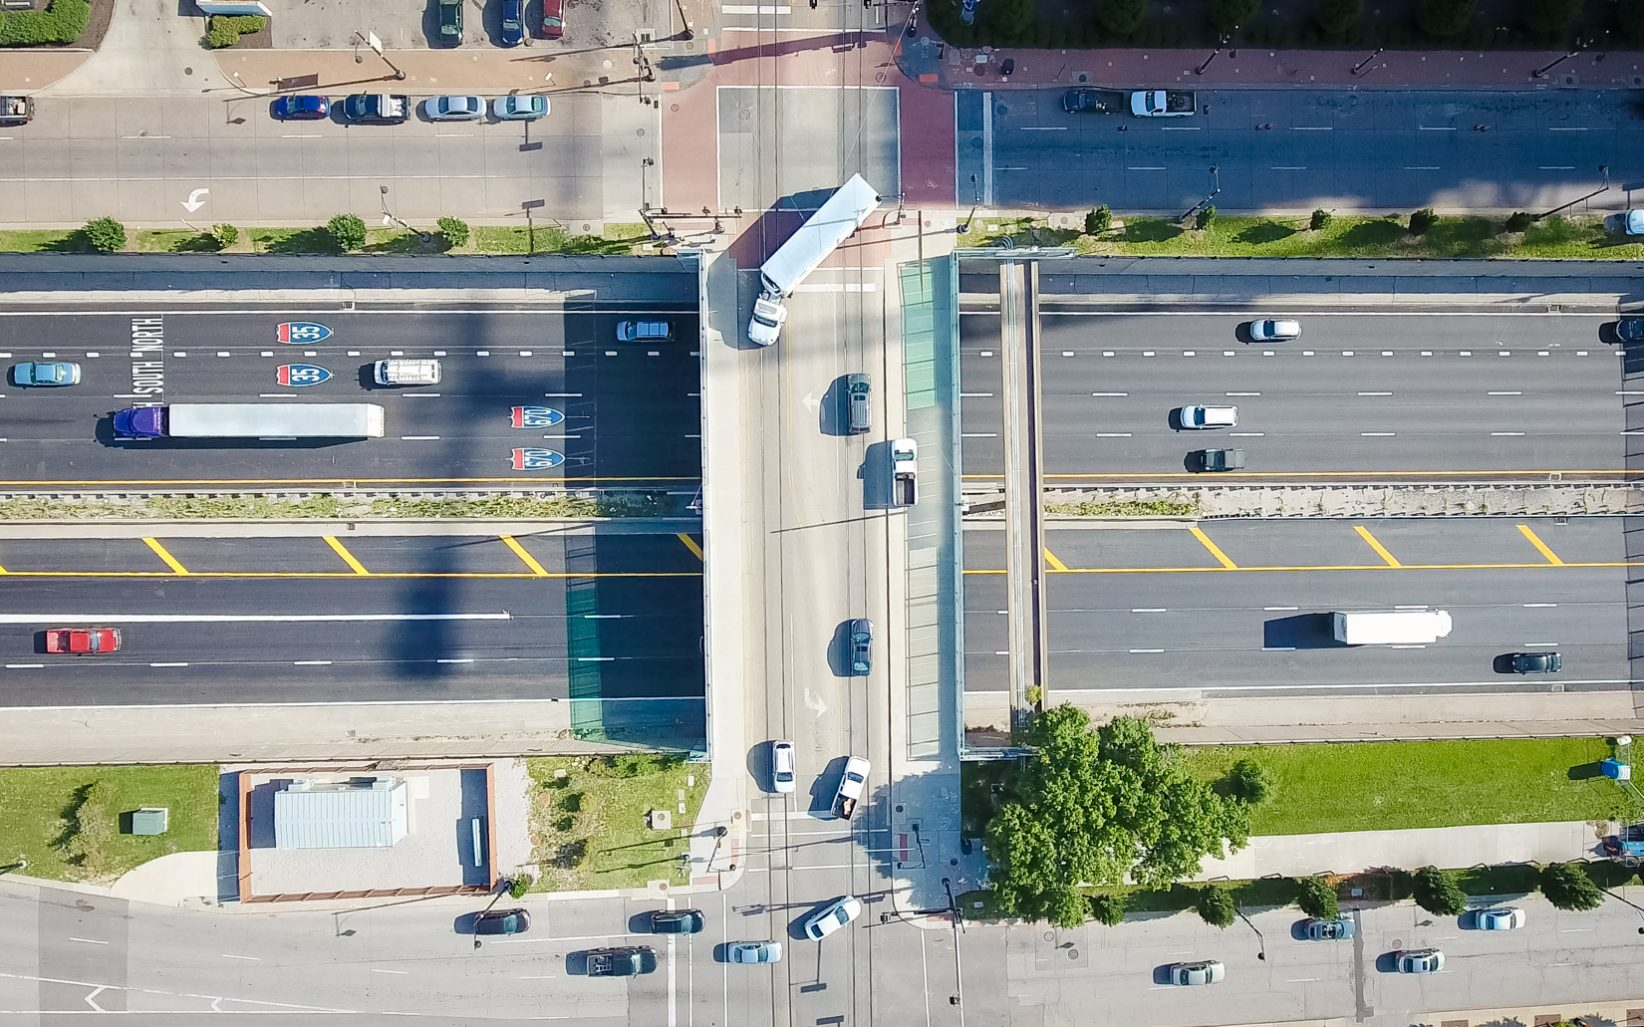 PRIORITIES SURVEY: ADAPTING TRANSPORTATION TO CLIMATE IMPACTS